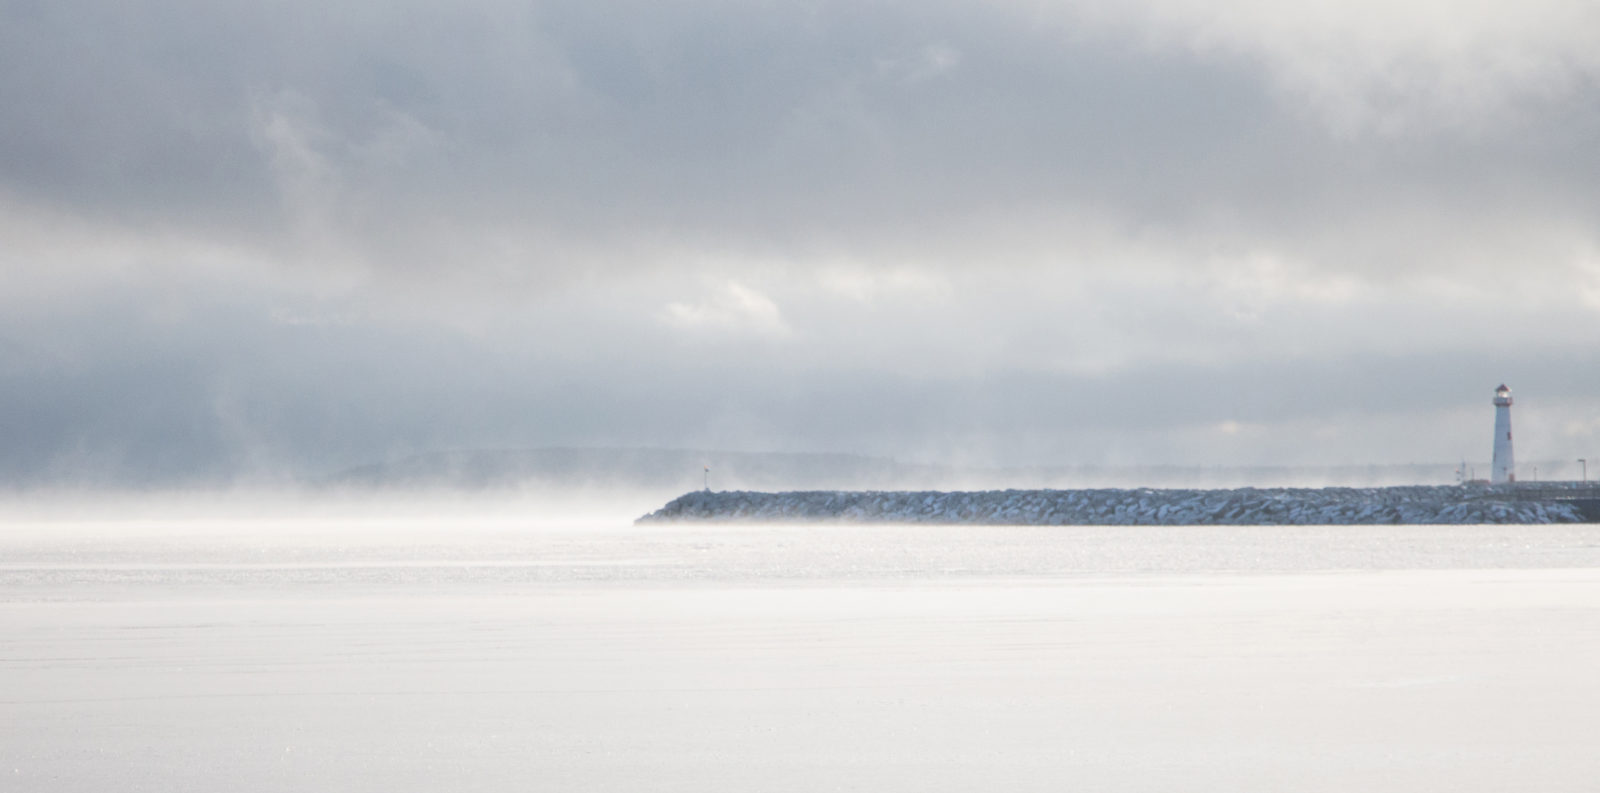 Lighthouse in a Winter Mist